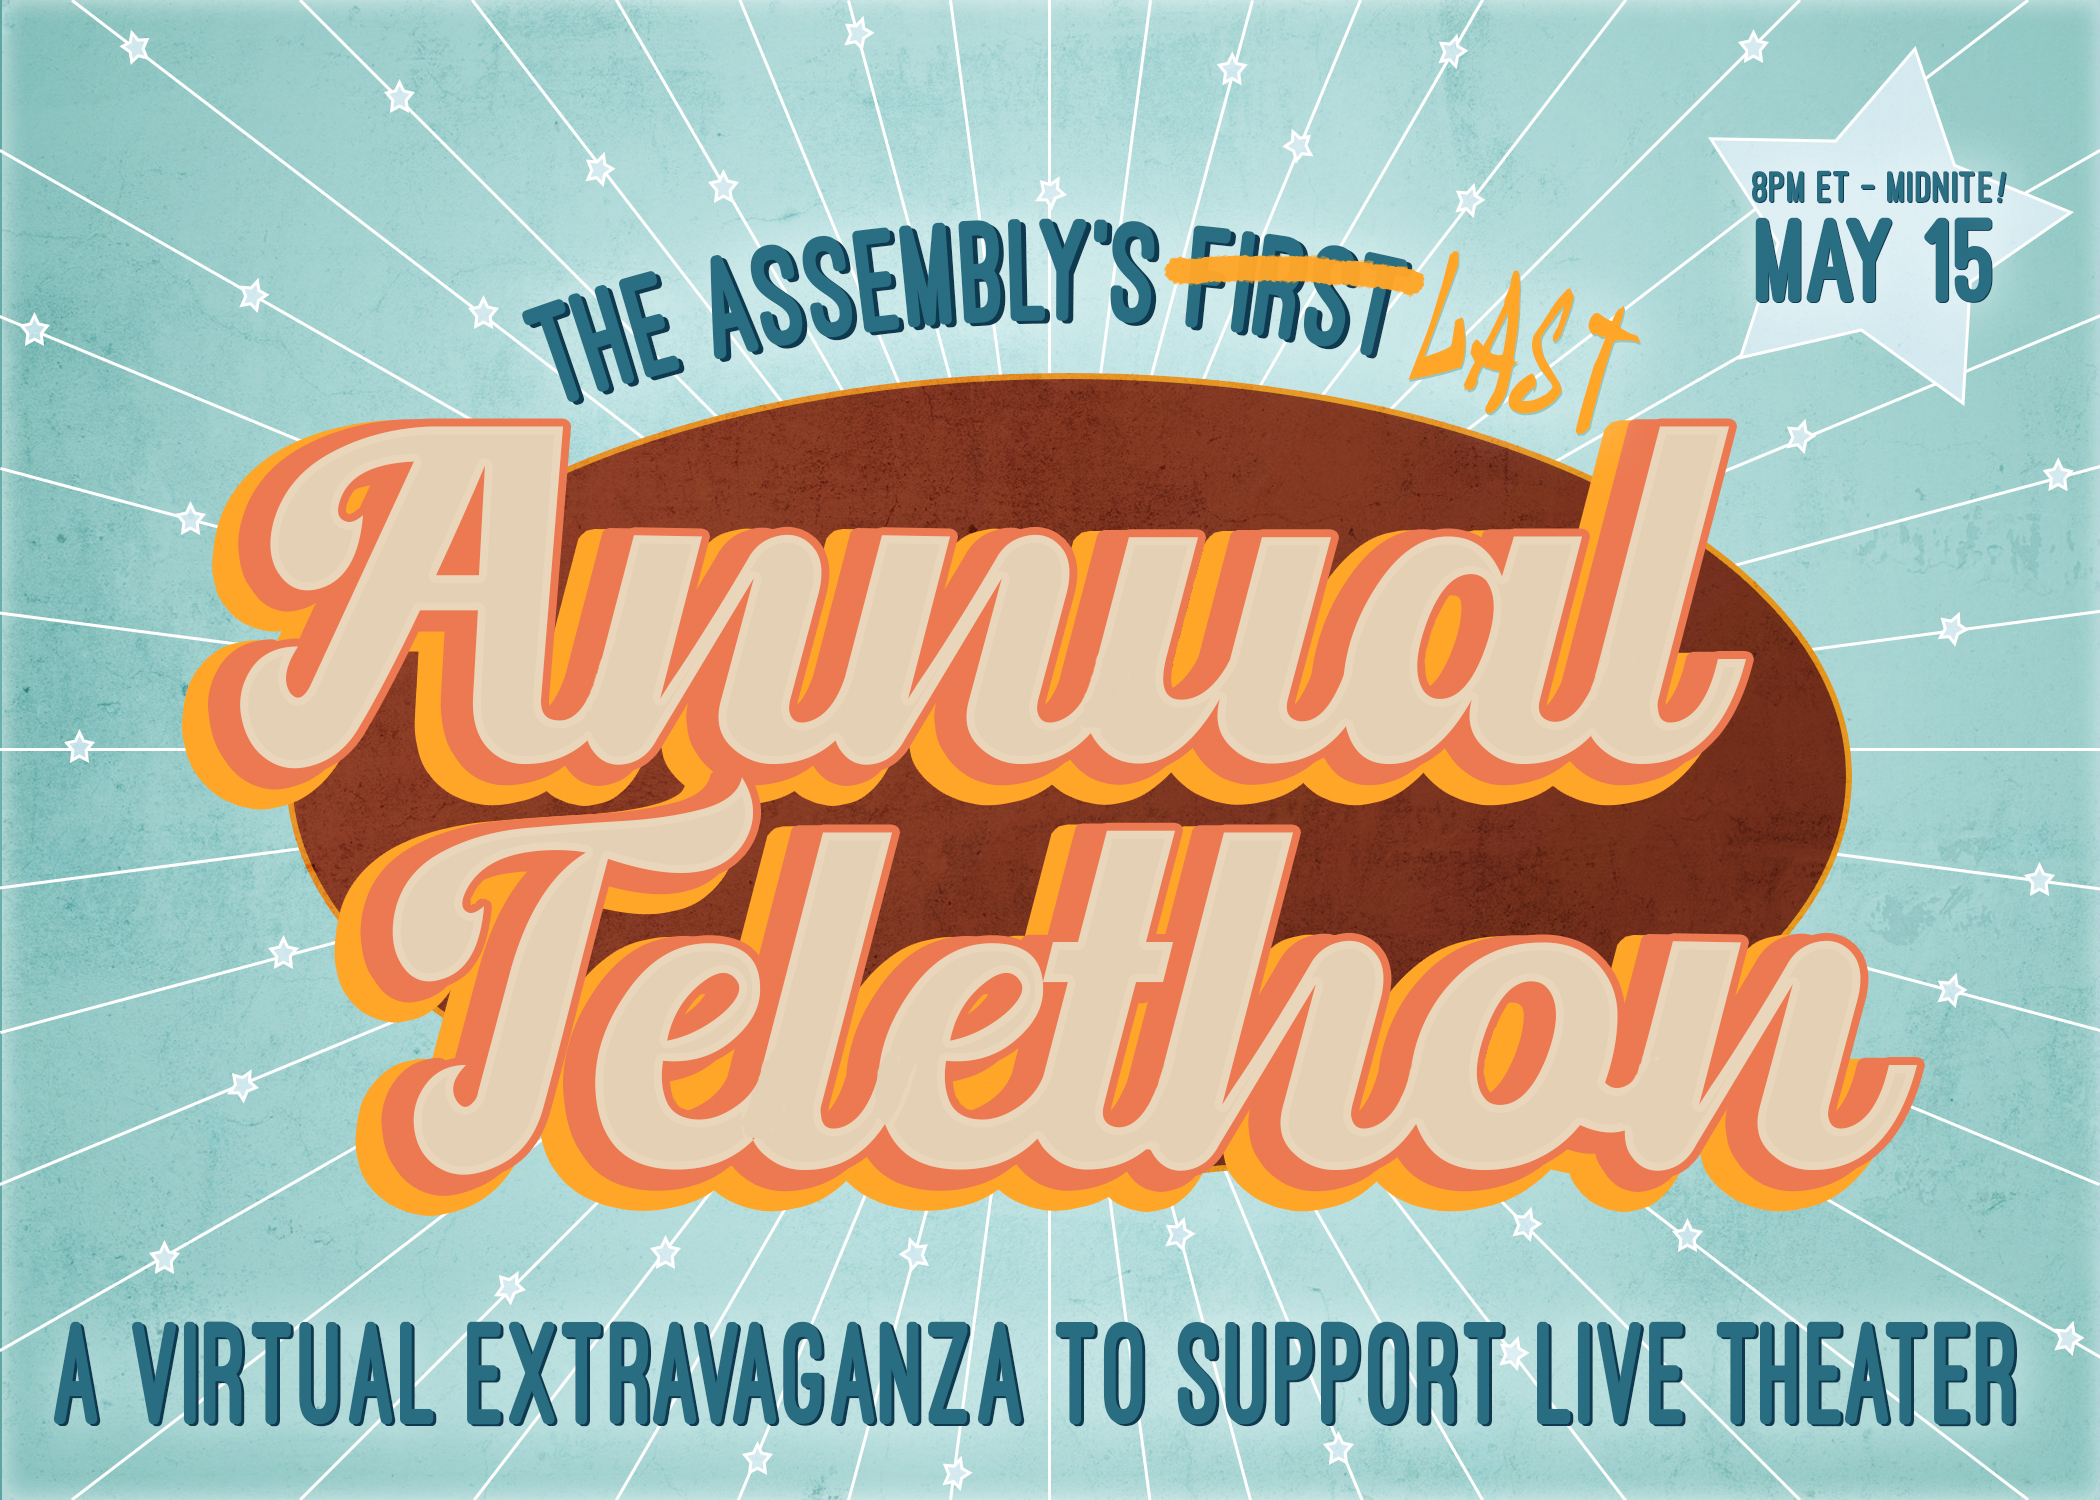 The Assembly's Telethon May 15